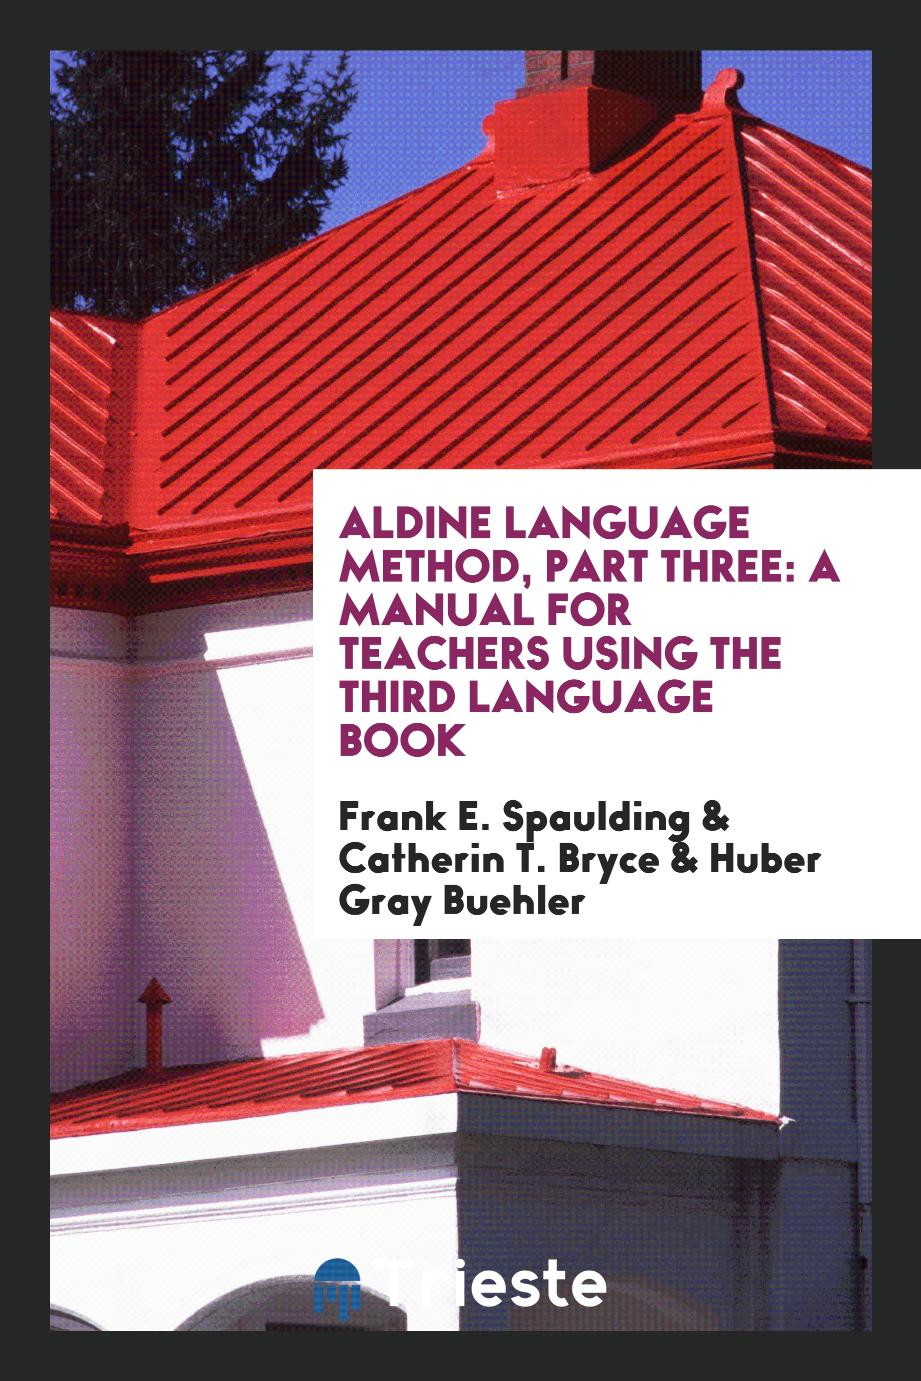 Frank E.  Spaulding, Catherin T. Bryce, Huber Gray Buehler - Aldine Language Method, Part Three: A Manual for Teachers Using the Third Language Book